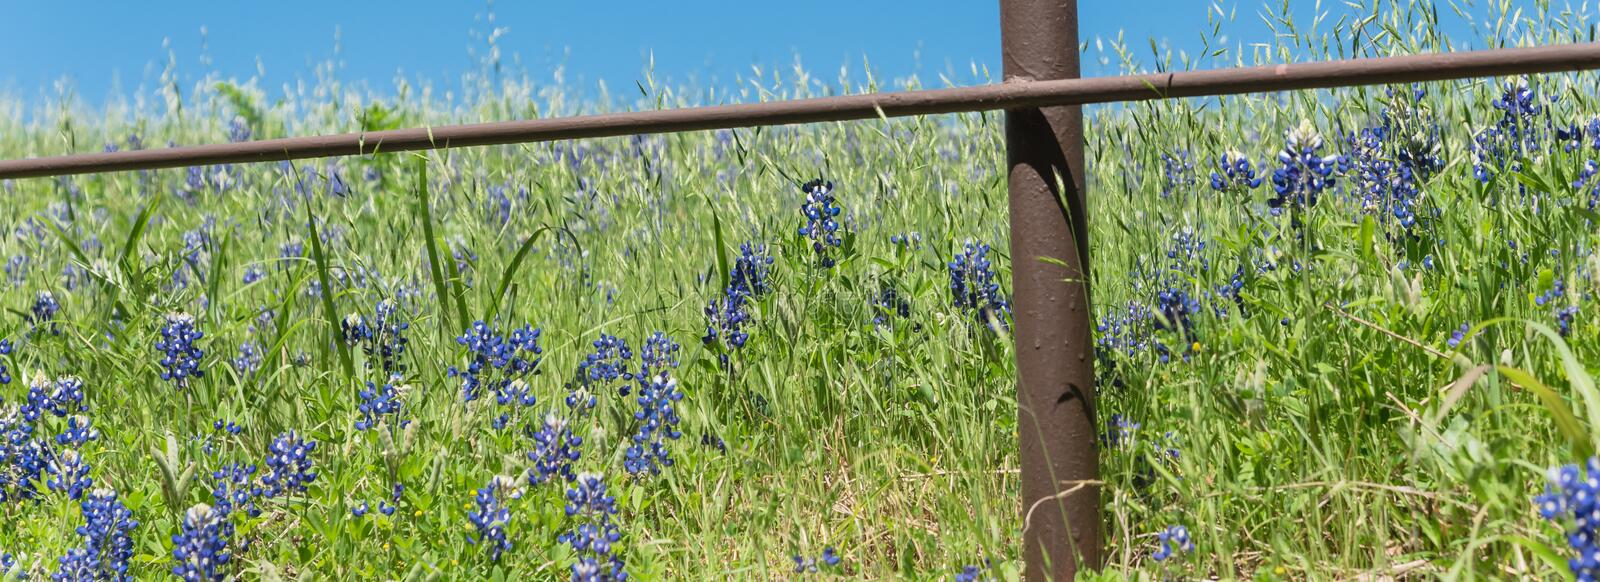 Panoramiczne blossom bluebonnet fields with rustic fence in country place of Texas, America zdjęcia stock